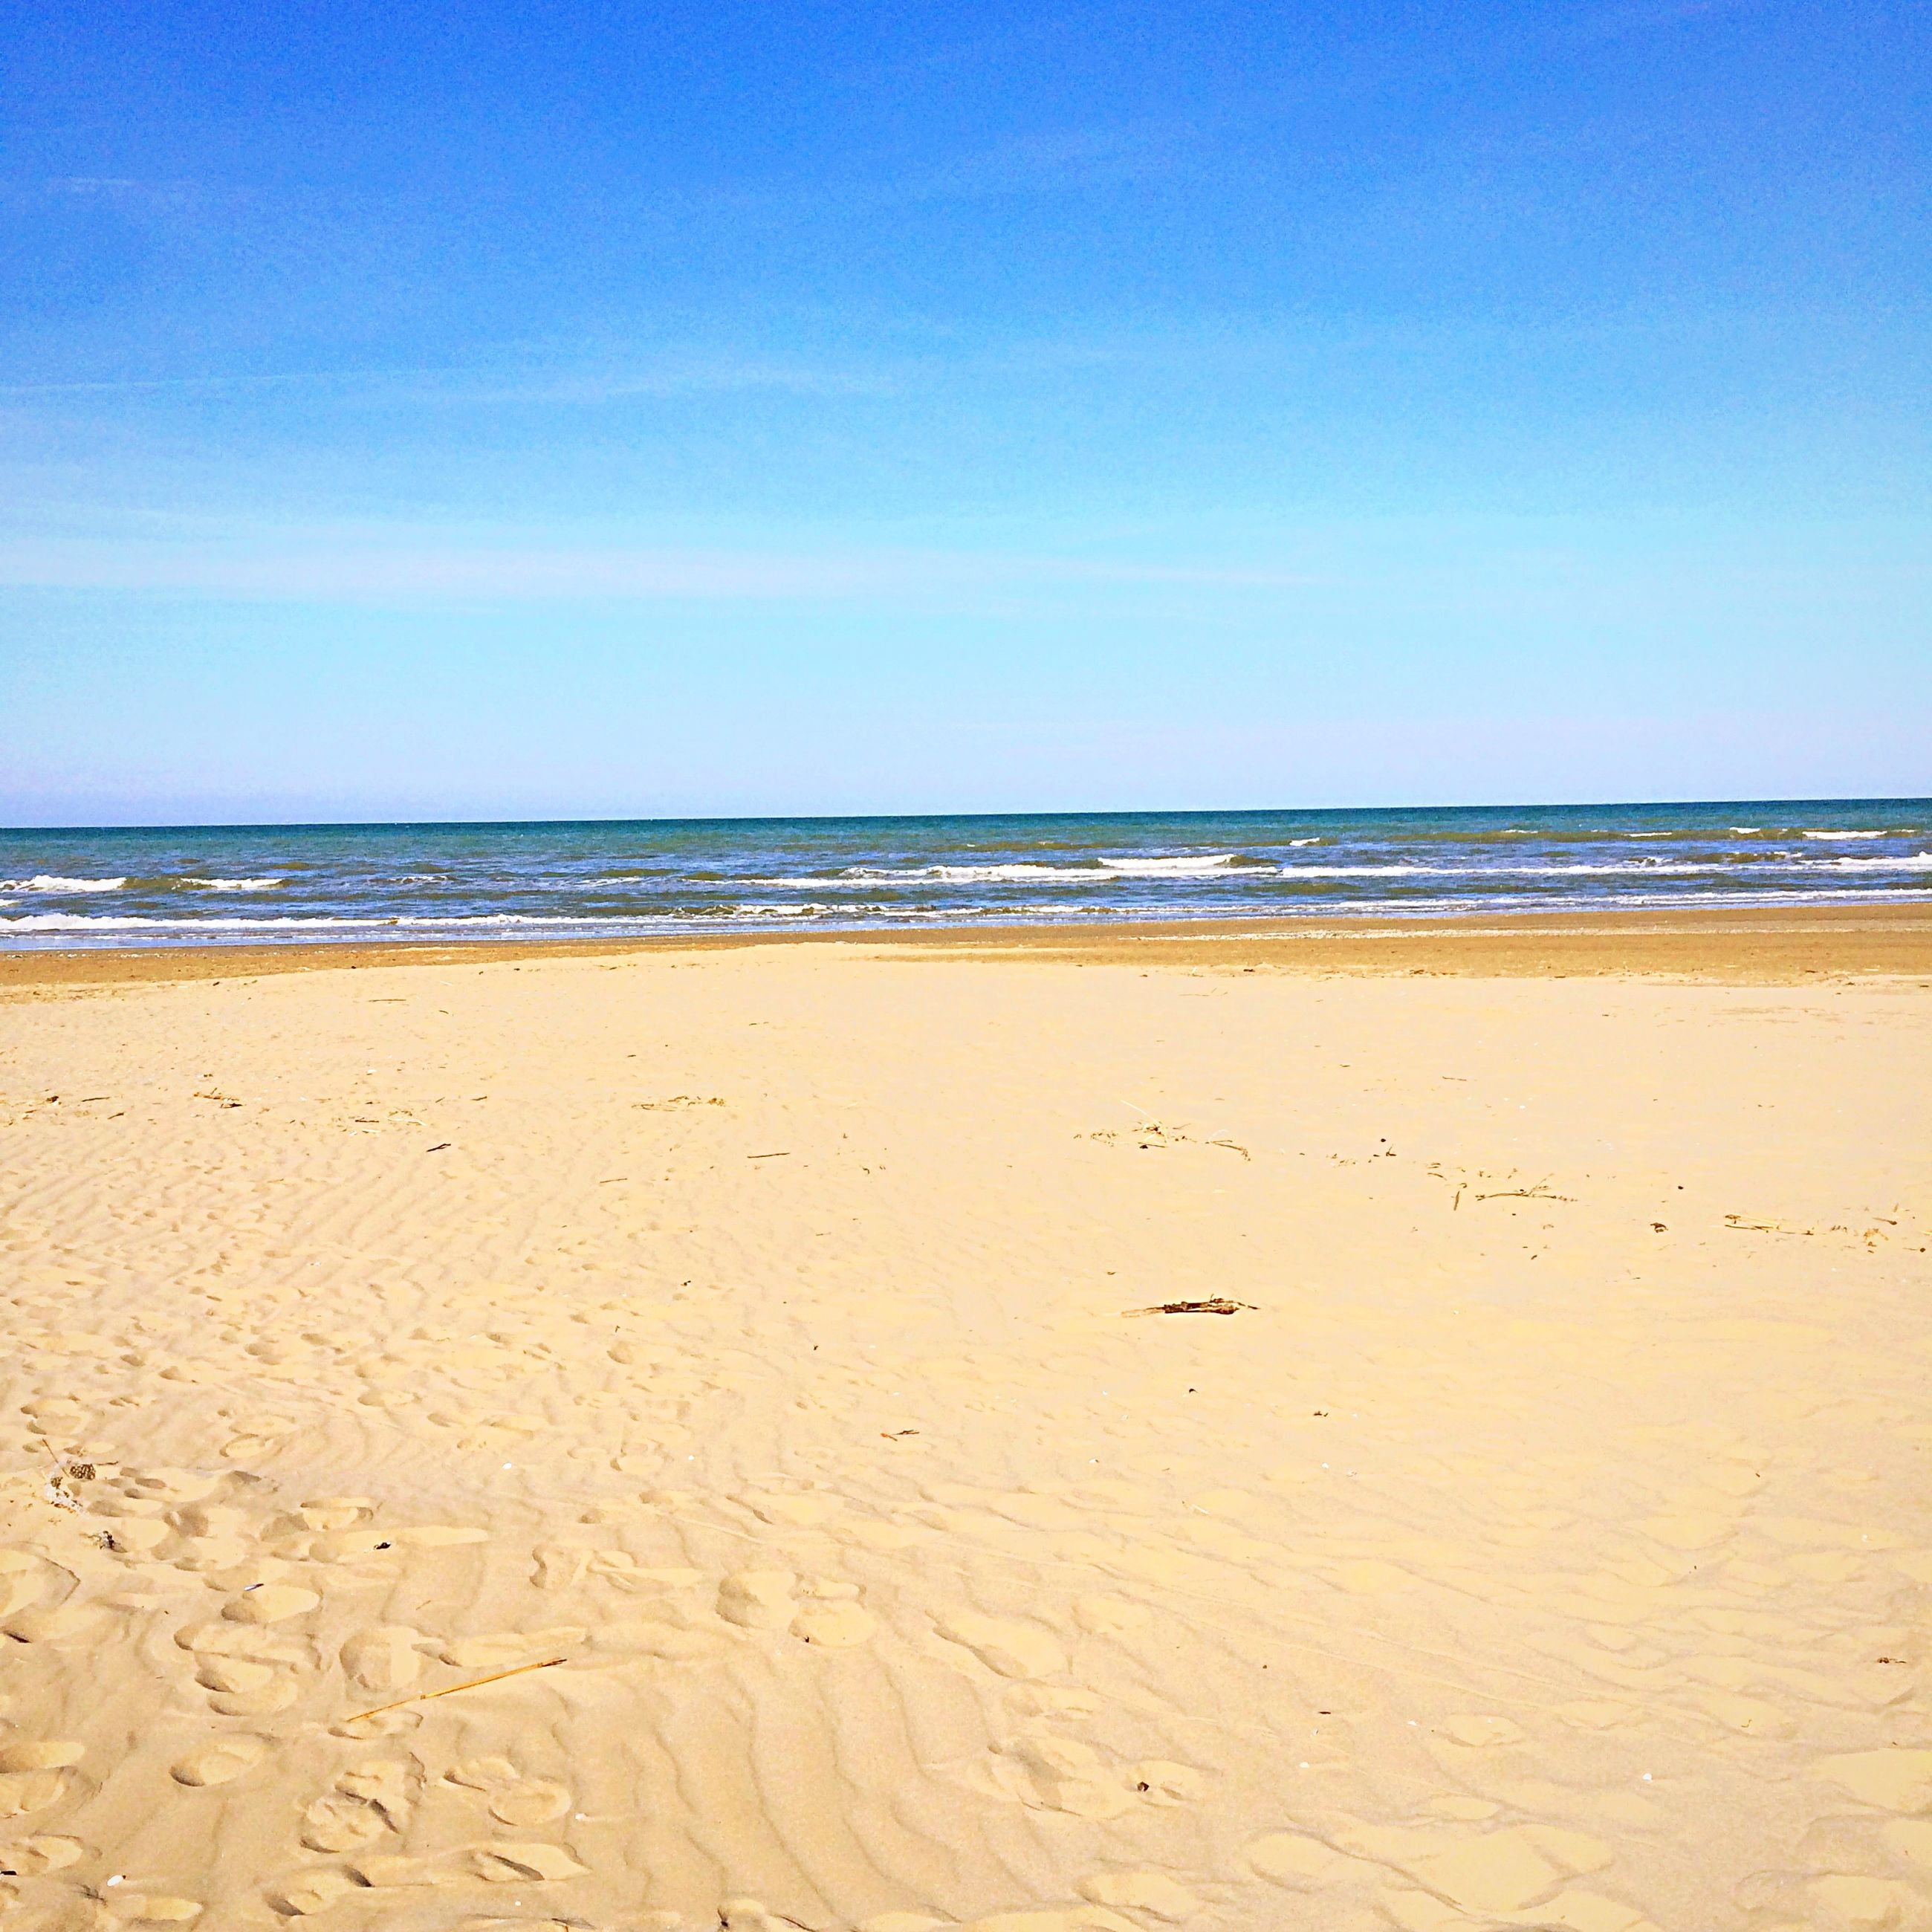 beach, sea, sand, horizon over water, shore, water, tranquil scene, tranquility, blue, scenics, beauty in nature, sky, nature, clear sky, idyllic, copy space, wave, coastline, sunlight, remote